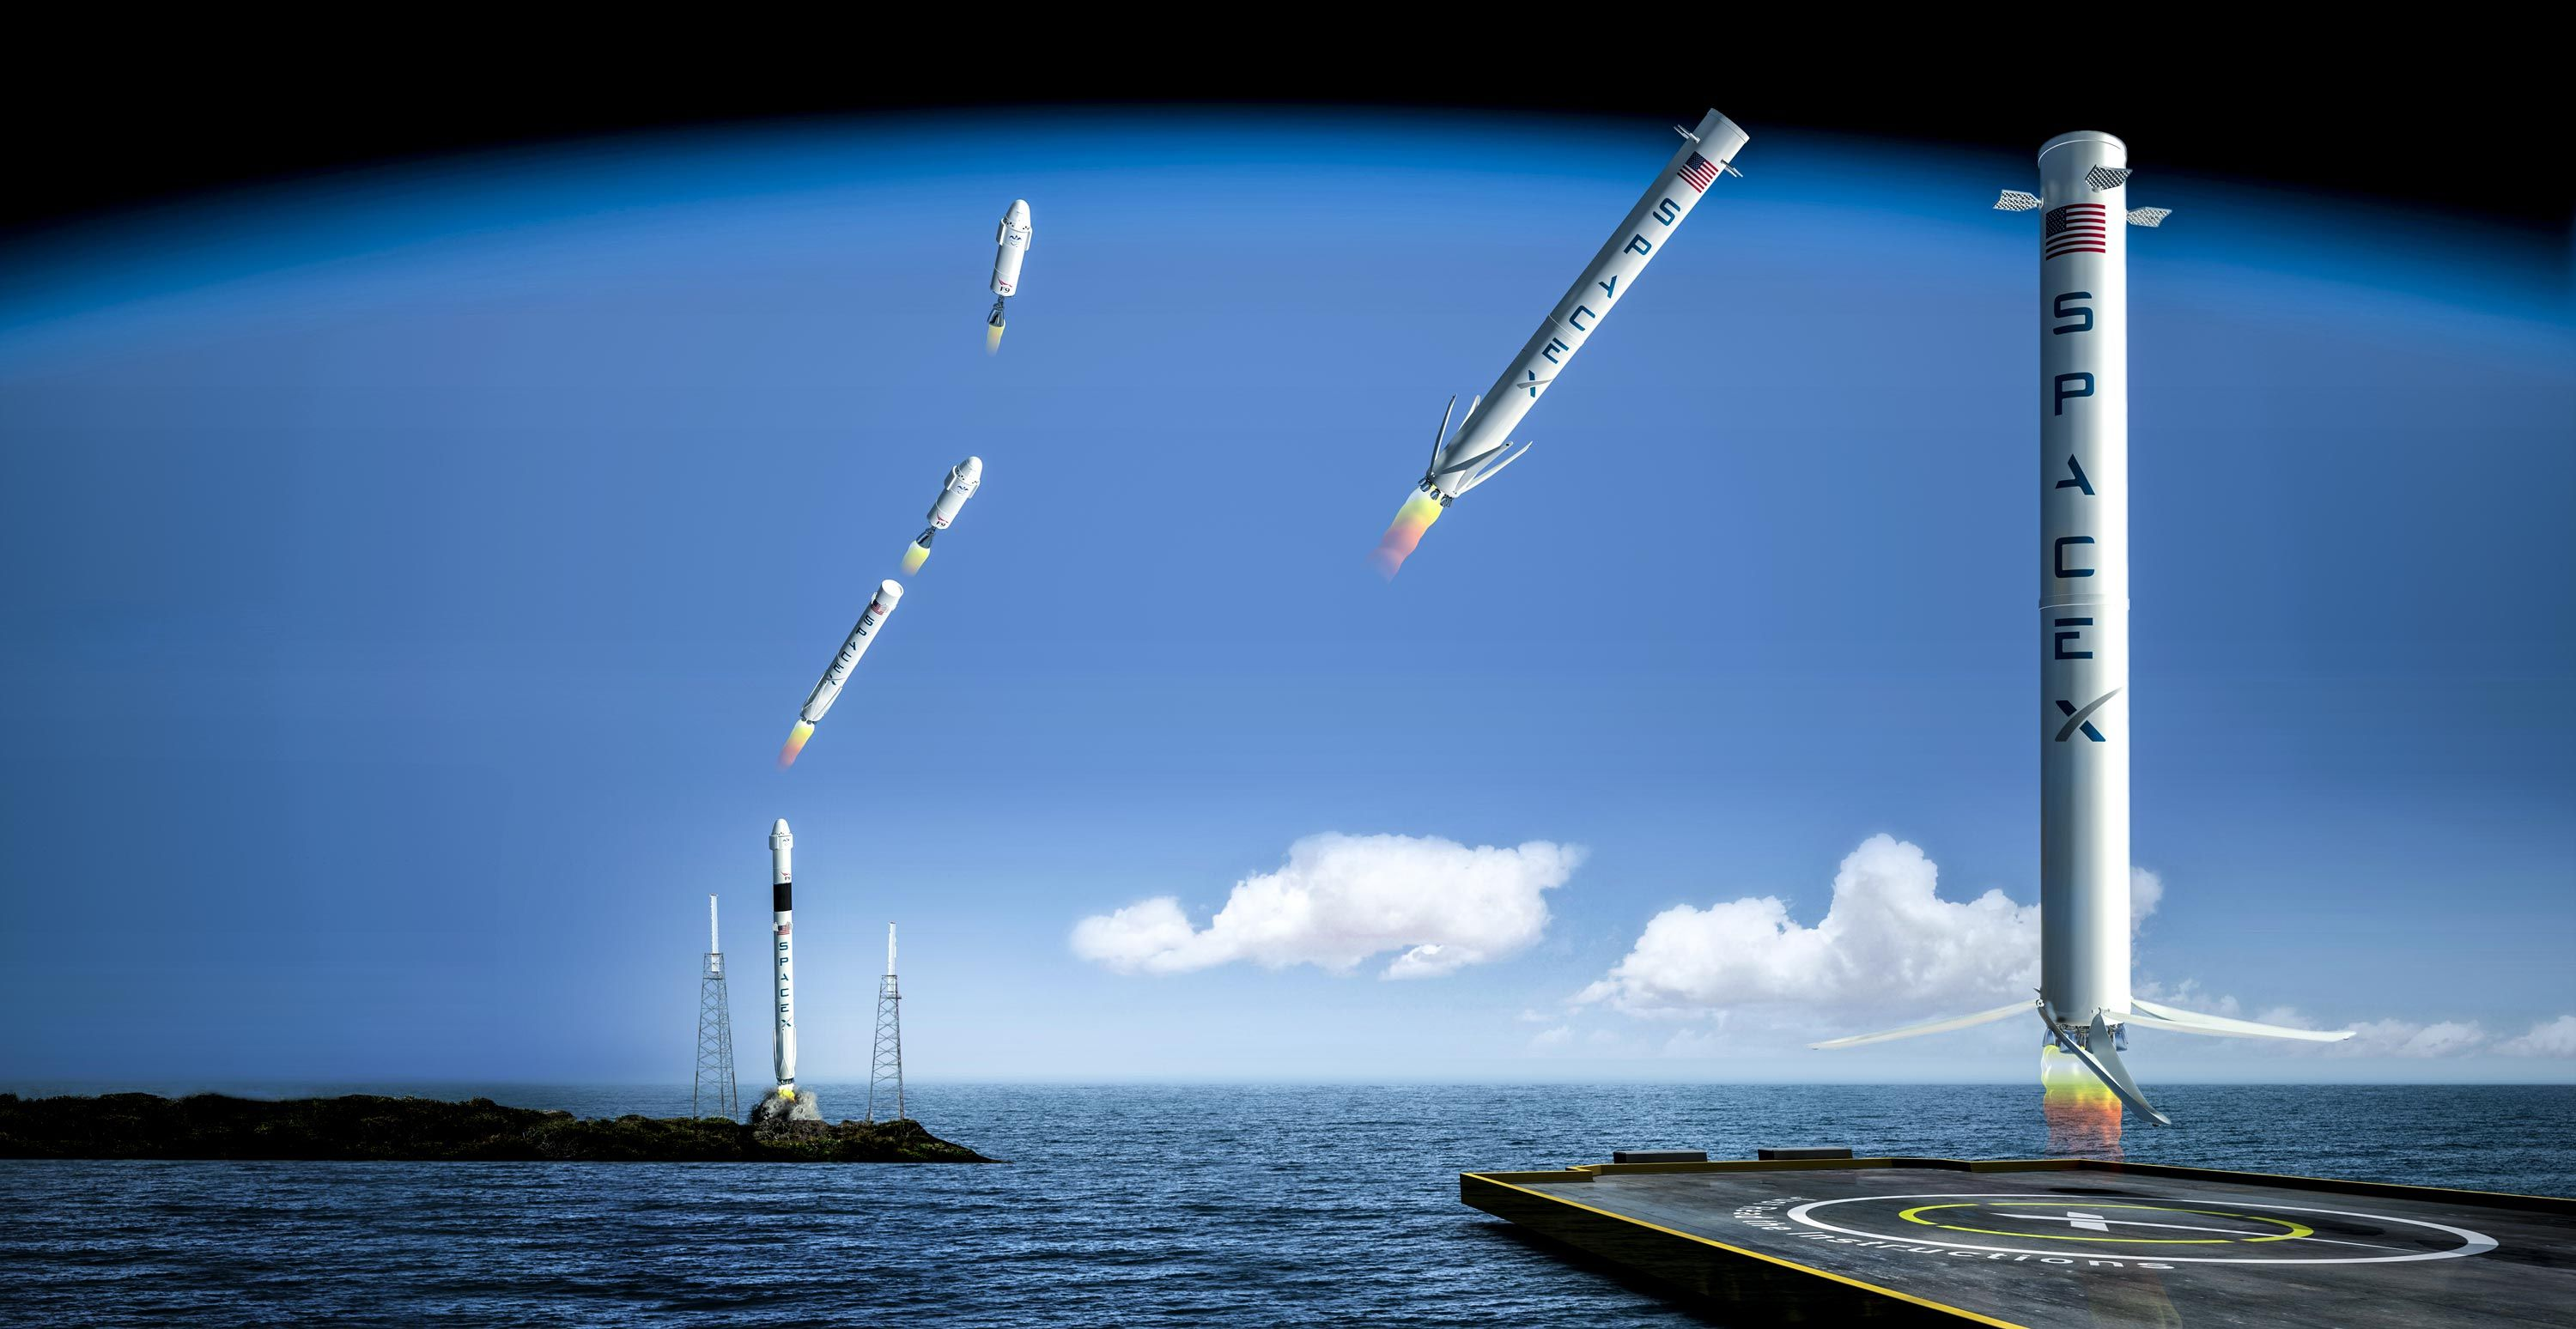 The Illustrated Guide to SpaceX's Reusable Rocket Launch